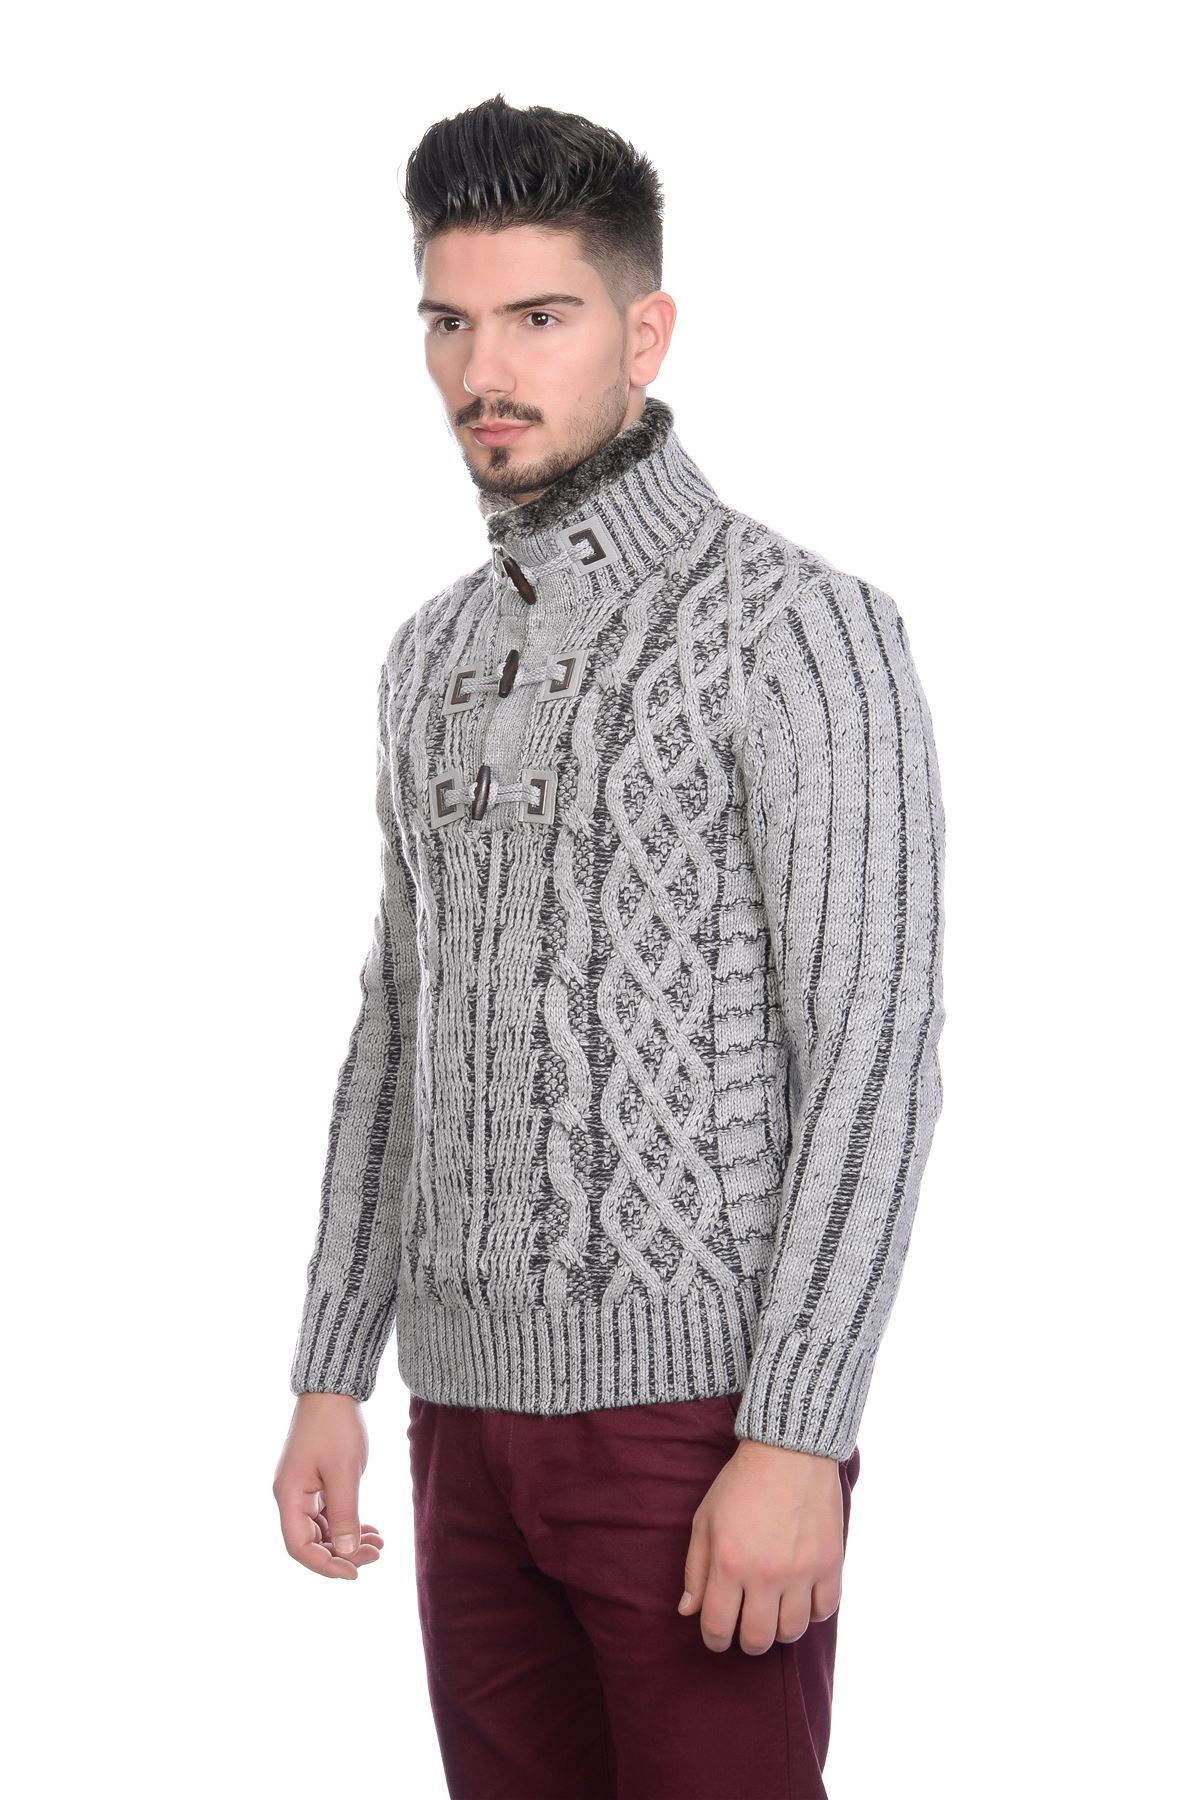 Mens Cable Knit Cardigan Unique Bnwt Mens Designer Cable Knit Jumper Cardigan Sweater with Of New 45 Models Mens Cable Knit Cardigan